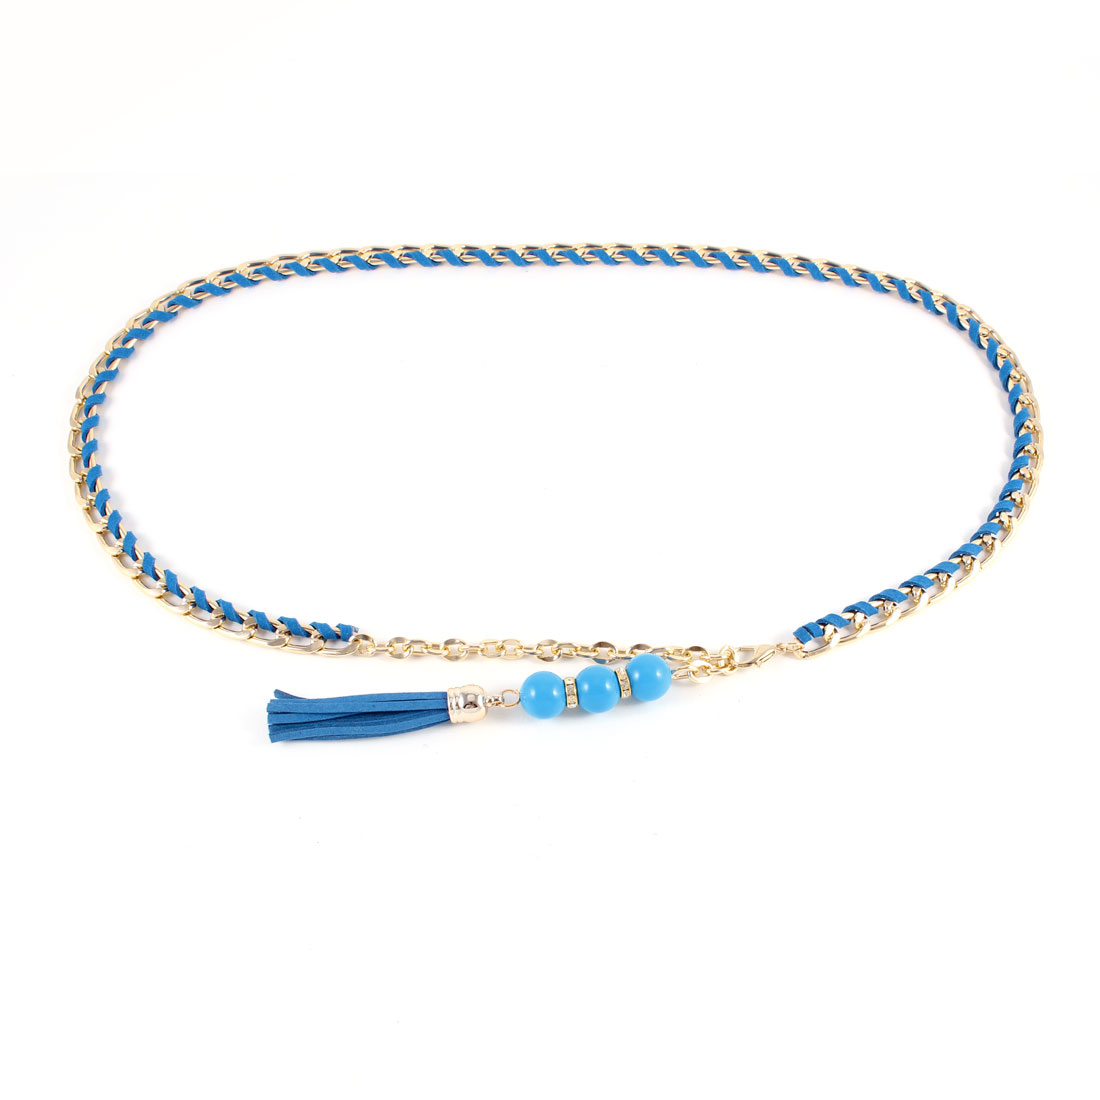 Lobster Clasp Closure Tassel Plastic Beads Chain Belt Pale Blue for Women